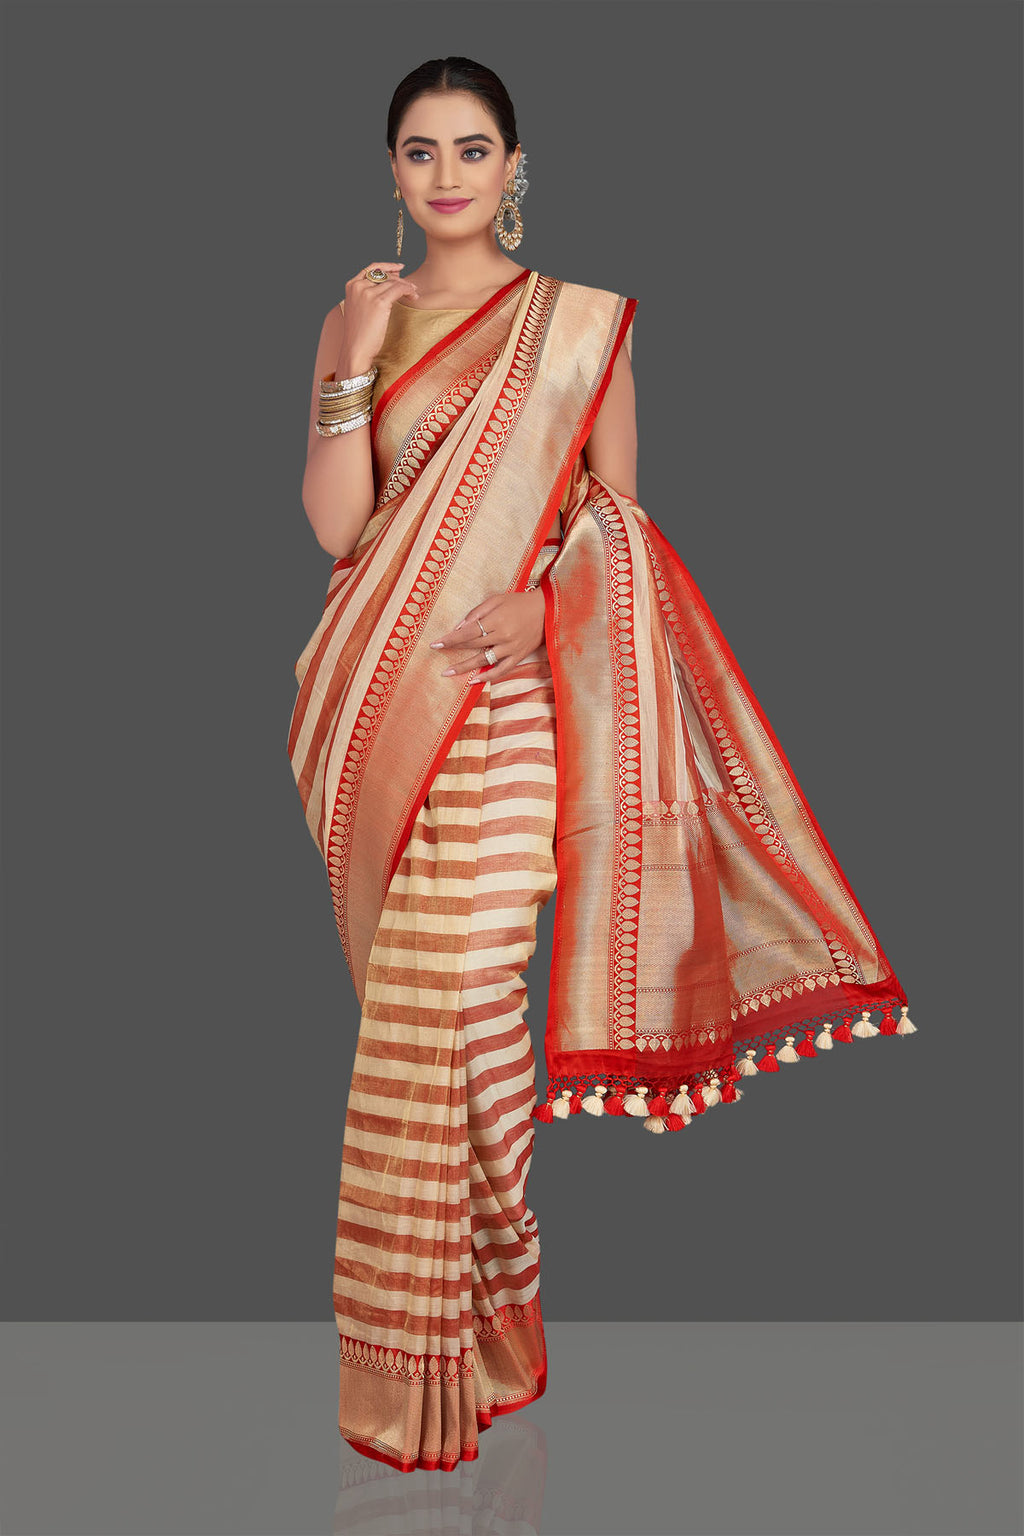 Buy stunning red and cream stripes tissue saree online in USA with zari border. Be the talk of the occasion in beautiful designer sarees, tussar silk saris, georgette sarees, handloom sarees, pure silk sarees from Pure Elegance Indian saree store in USA.-full view